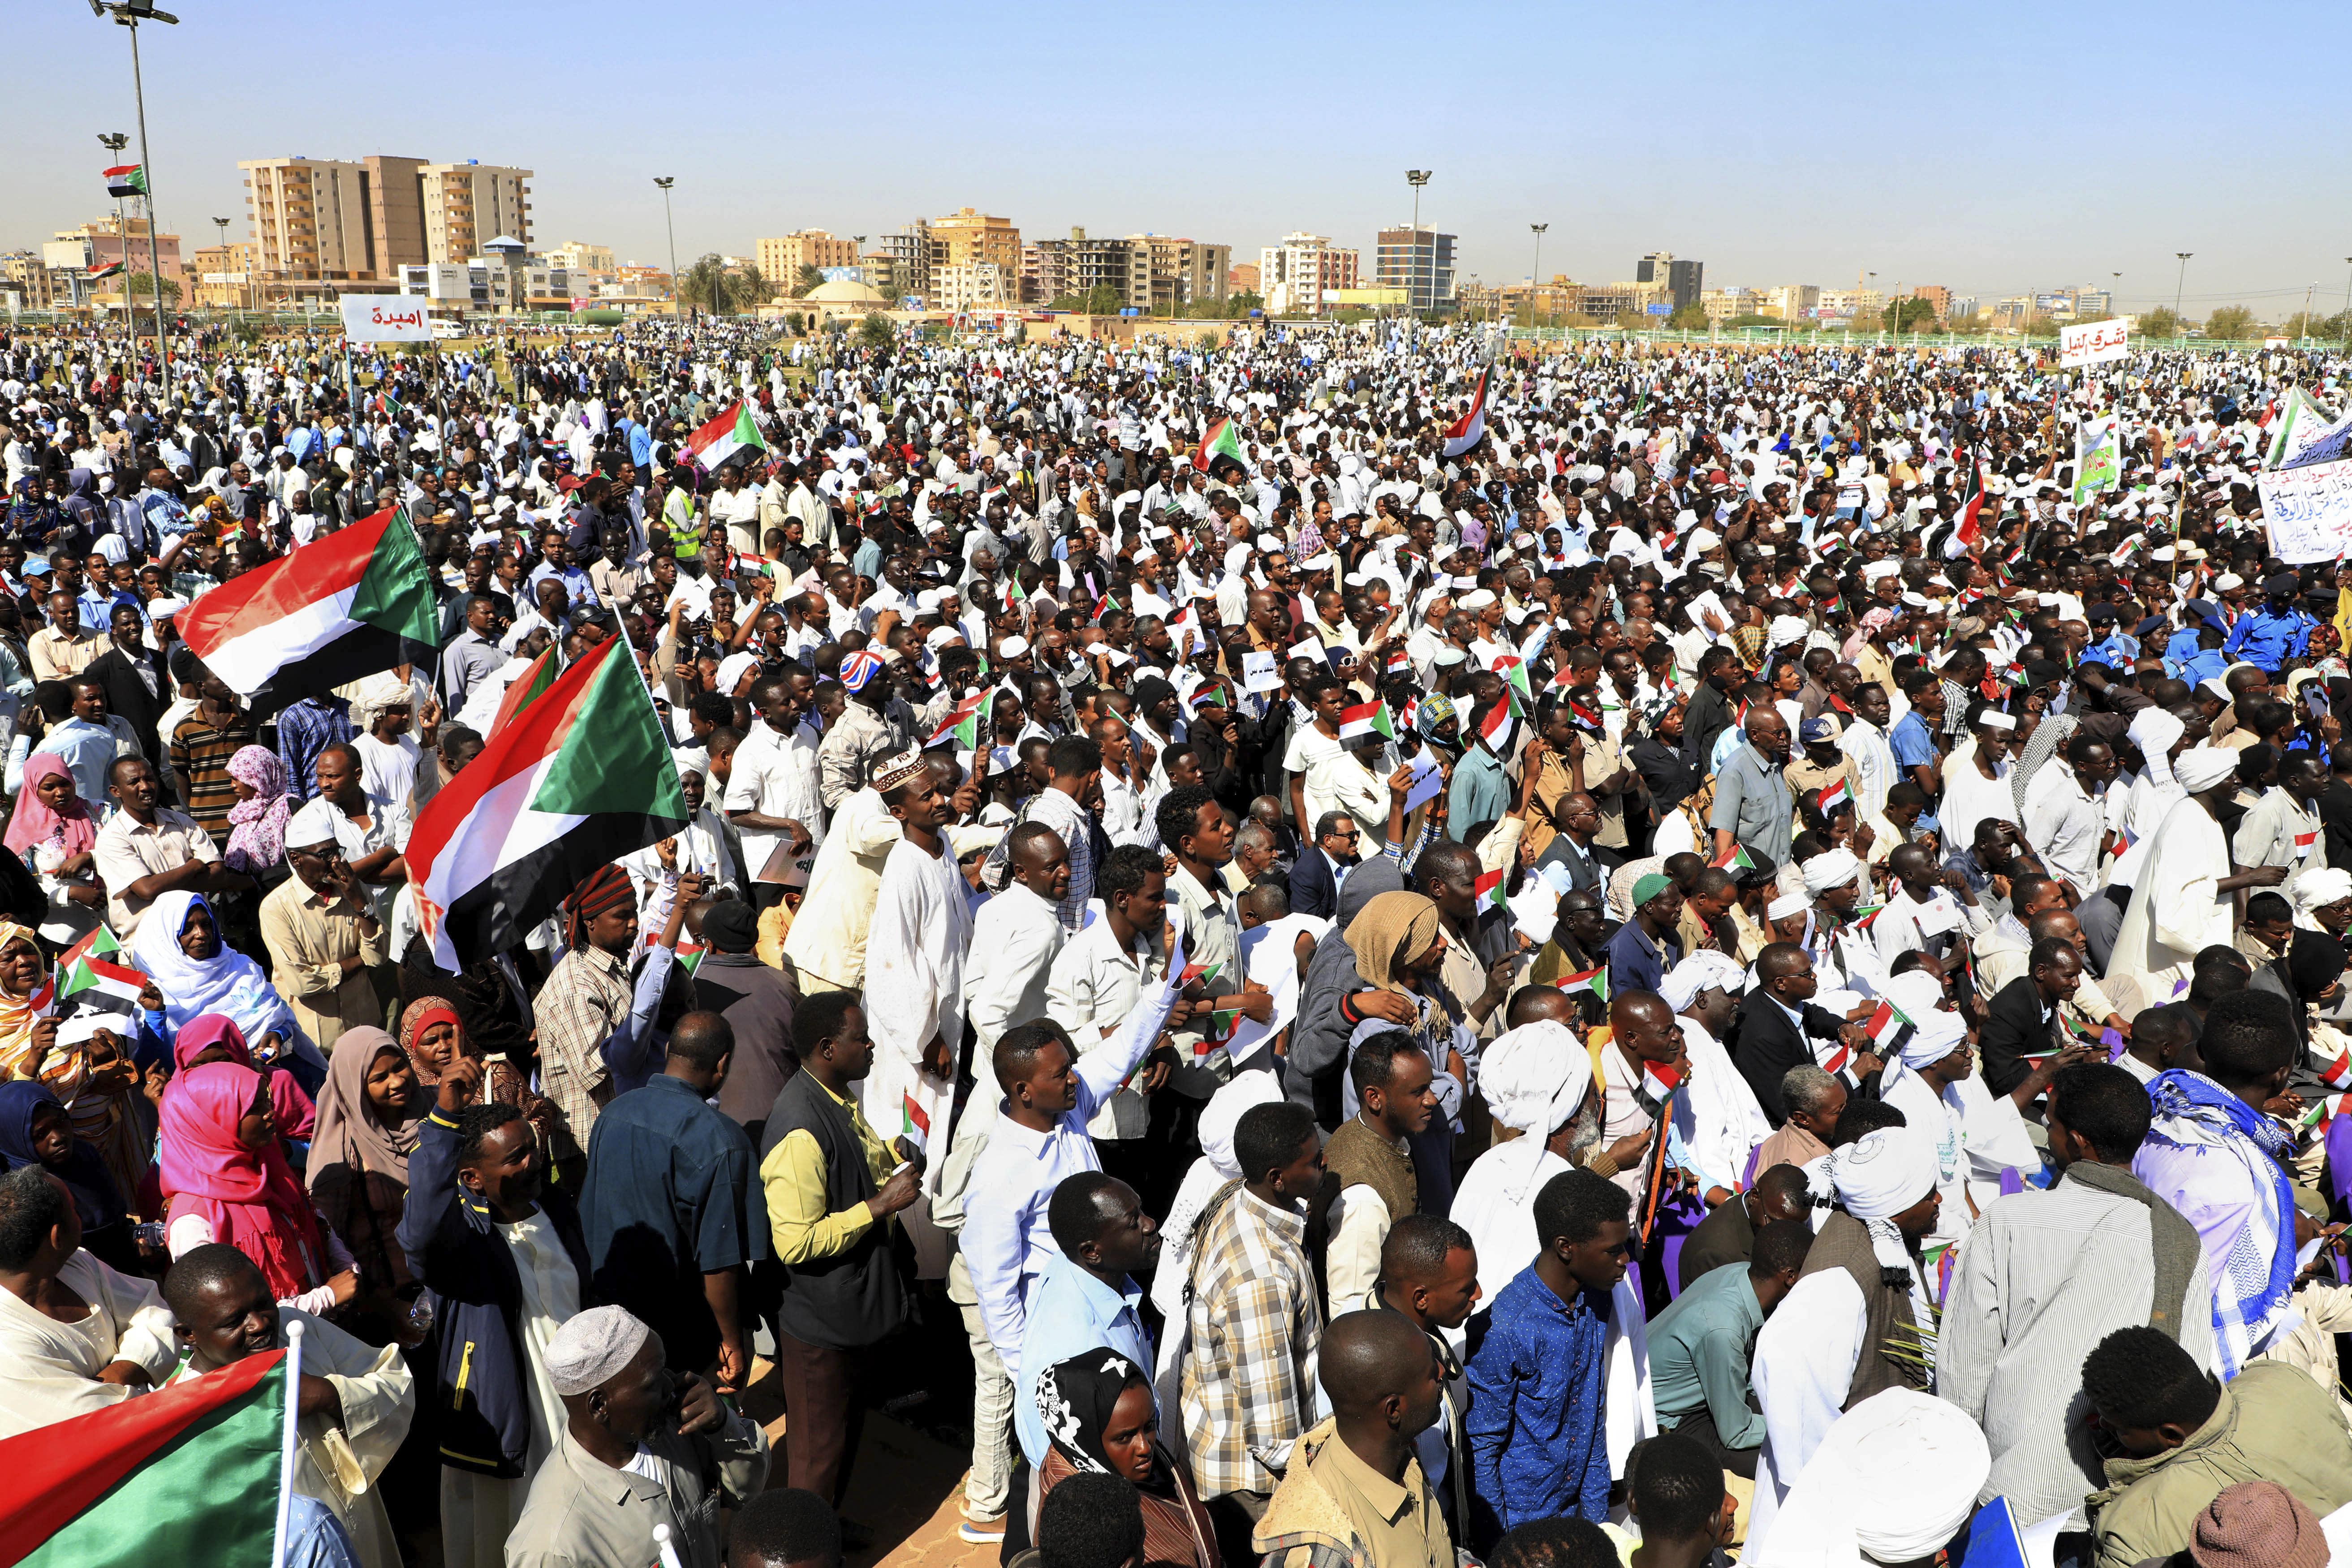 """Supporters of Sudan's President Omar al-Bashir attend a pro-government rally in Khartoum, Sudan, Wednesday, Jan. 9, 2019. Al-Bashir told the gathering of several thousands of supporters in the capital that he is ready to step down only """"through election."""" The remarks come after three weeks of anti-government protests. (AP Photo/Mahmoud Hjaj)"""